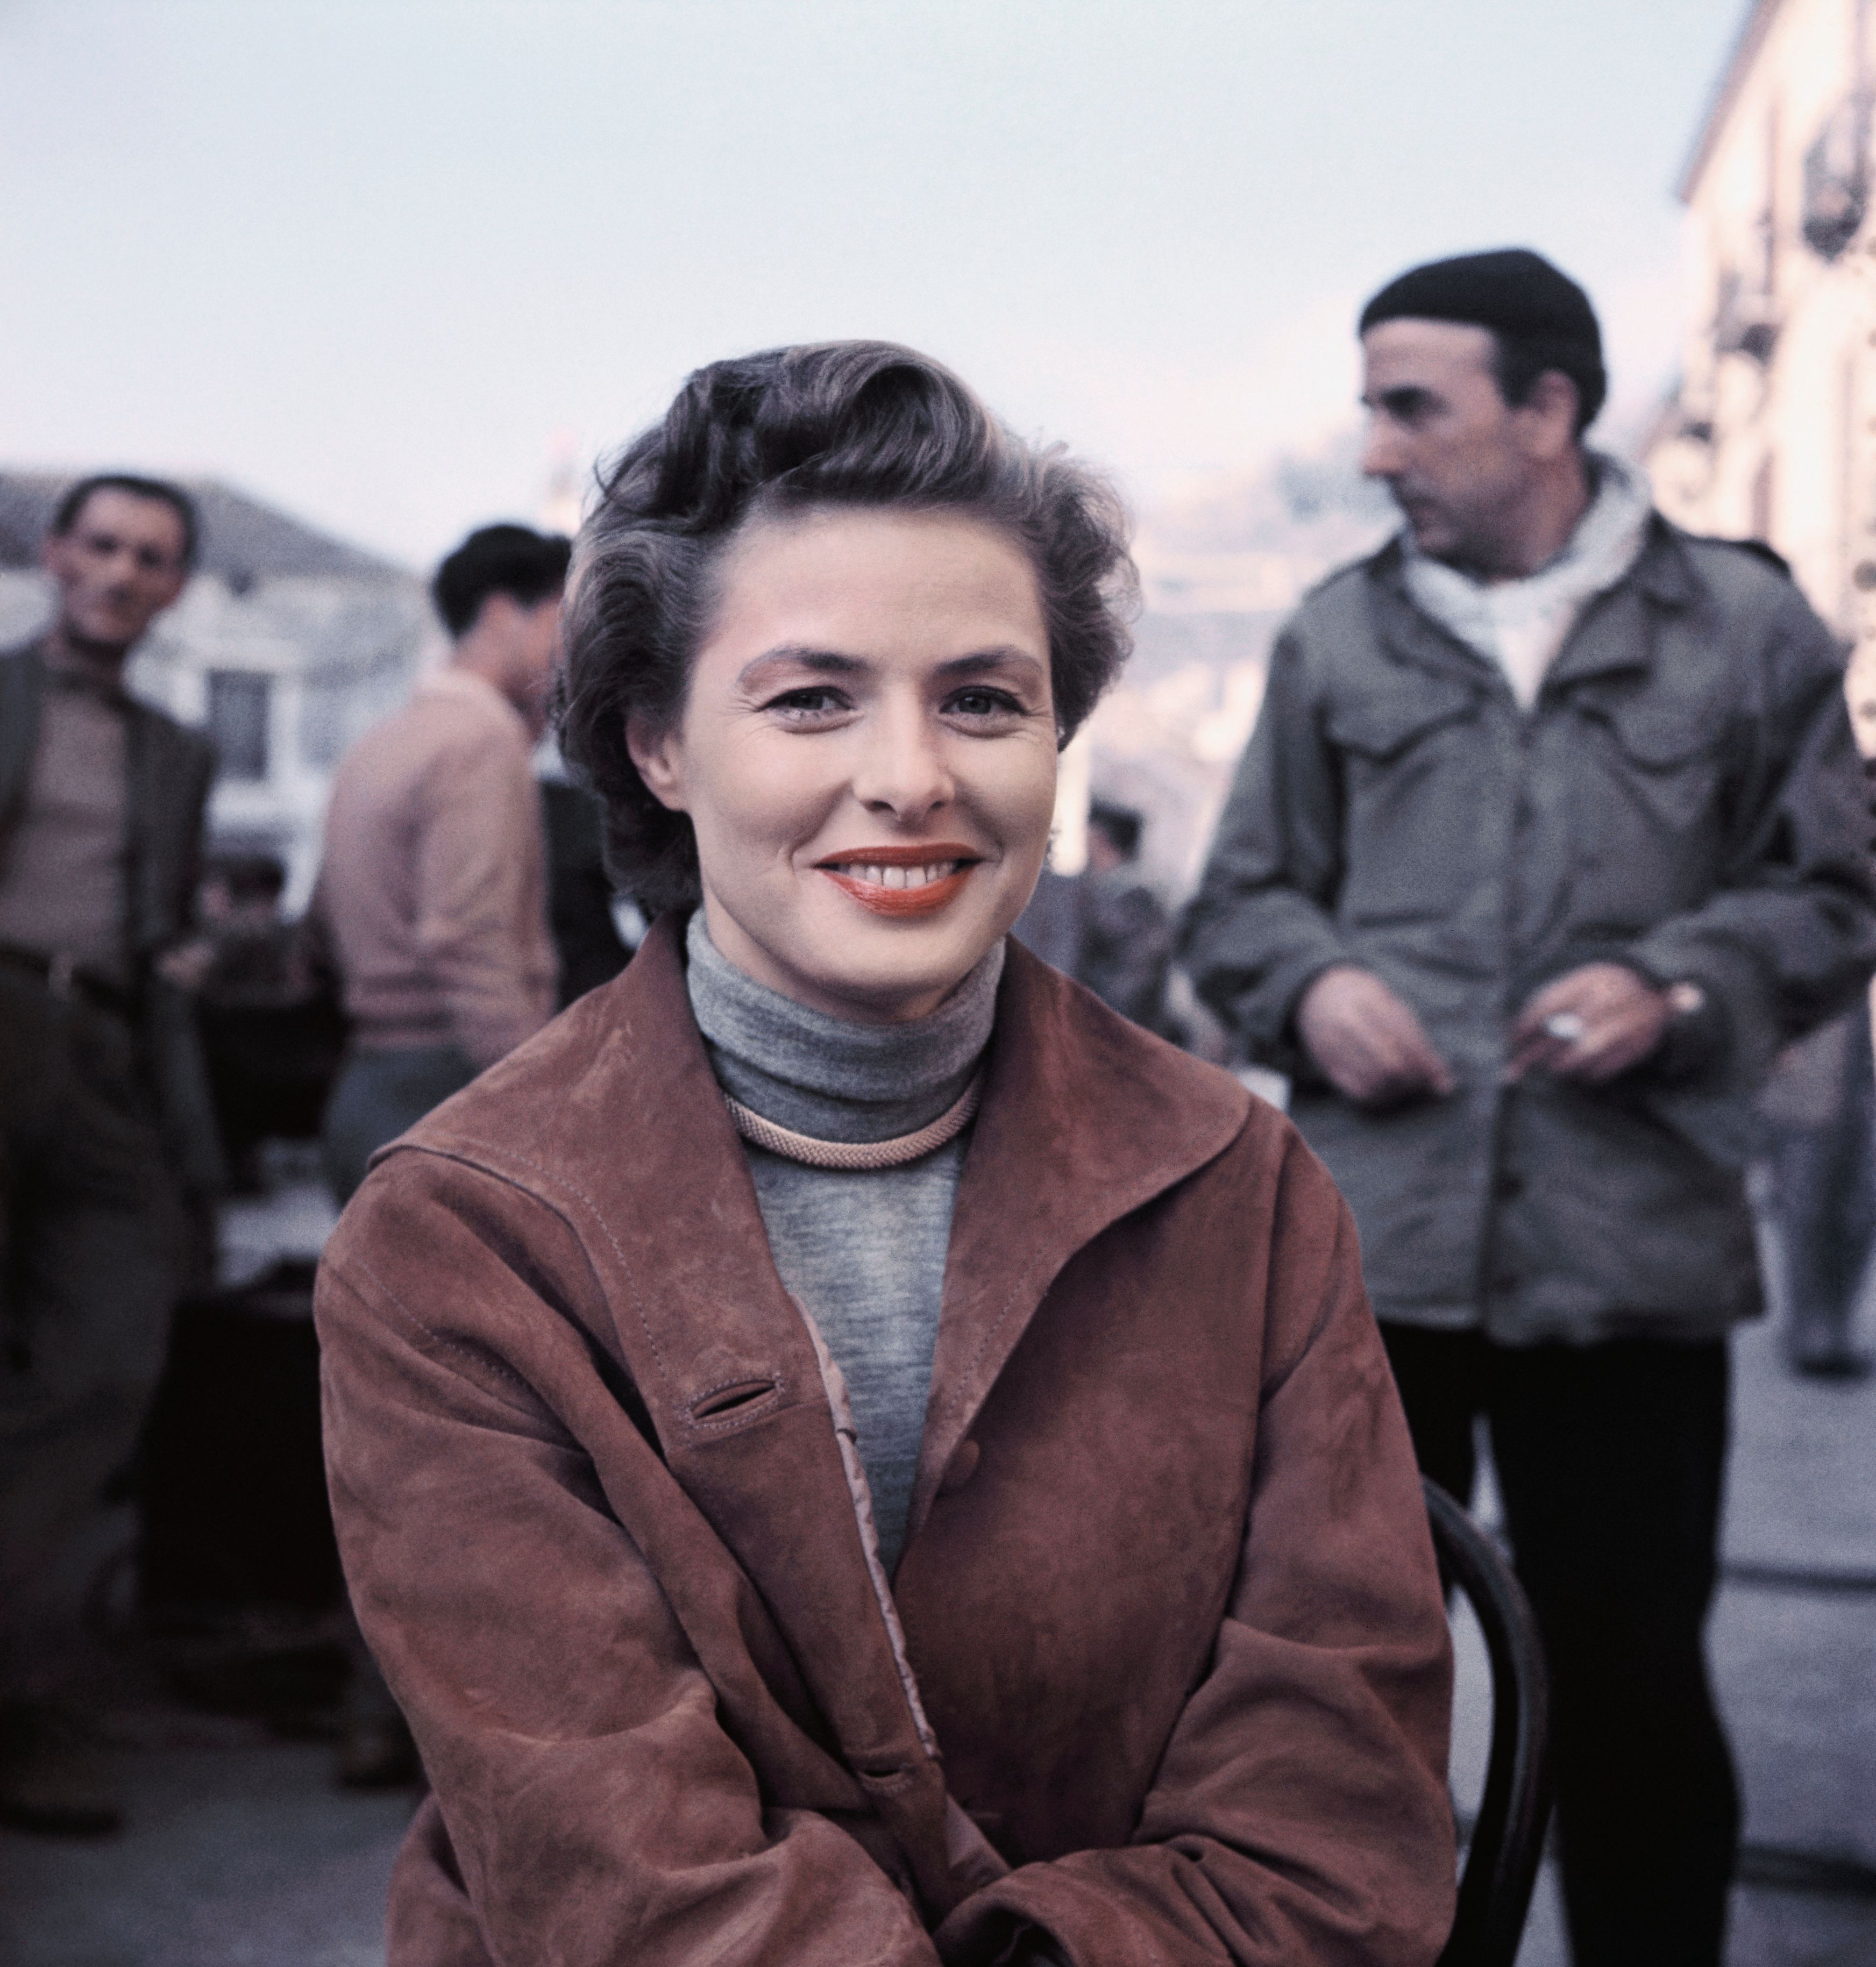 """Ingrid Bergman on the set of """"Journey to Italy"""" directed by her husband, Roberto Rossellini, in 1954 